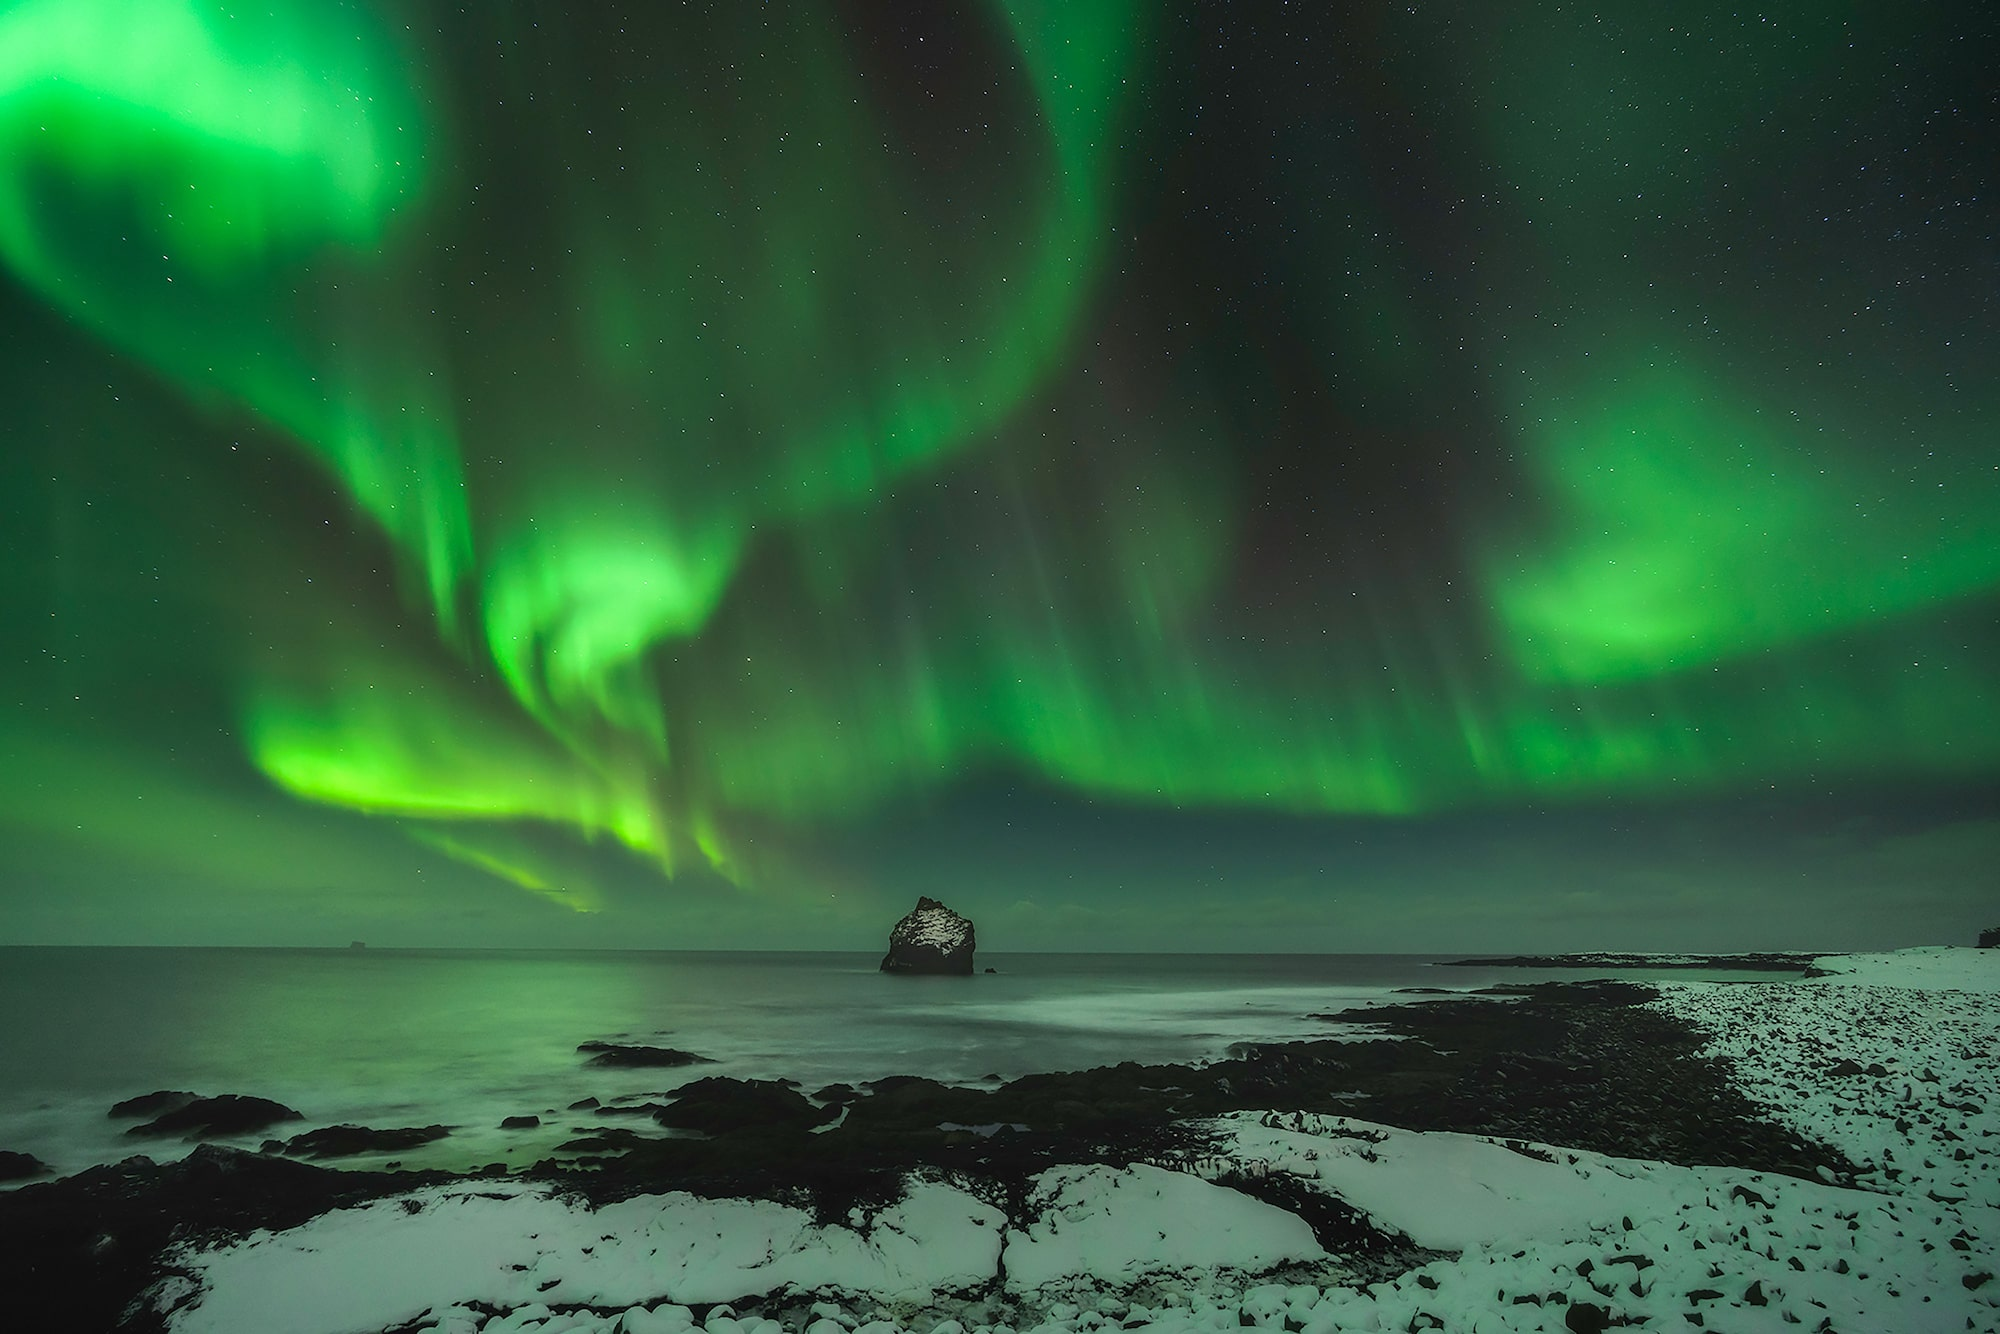 iurie belegursch sony alpha 7RIII aurora borealis at the shore with a large snowy rock n the distance